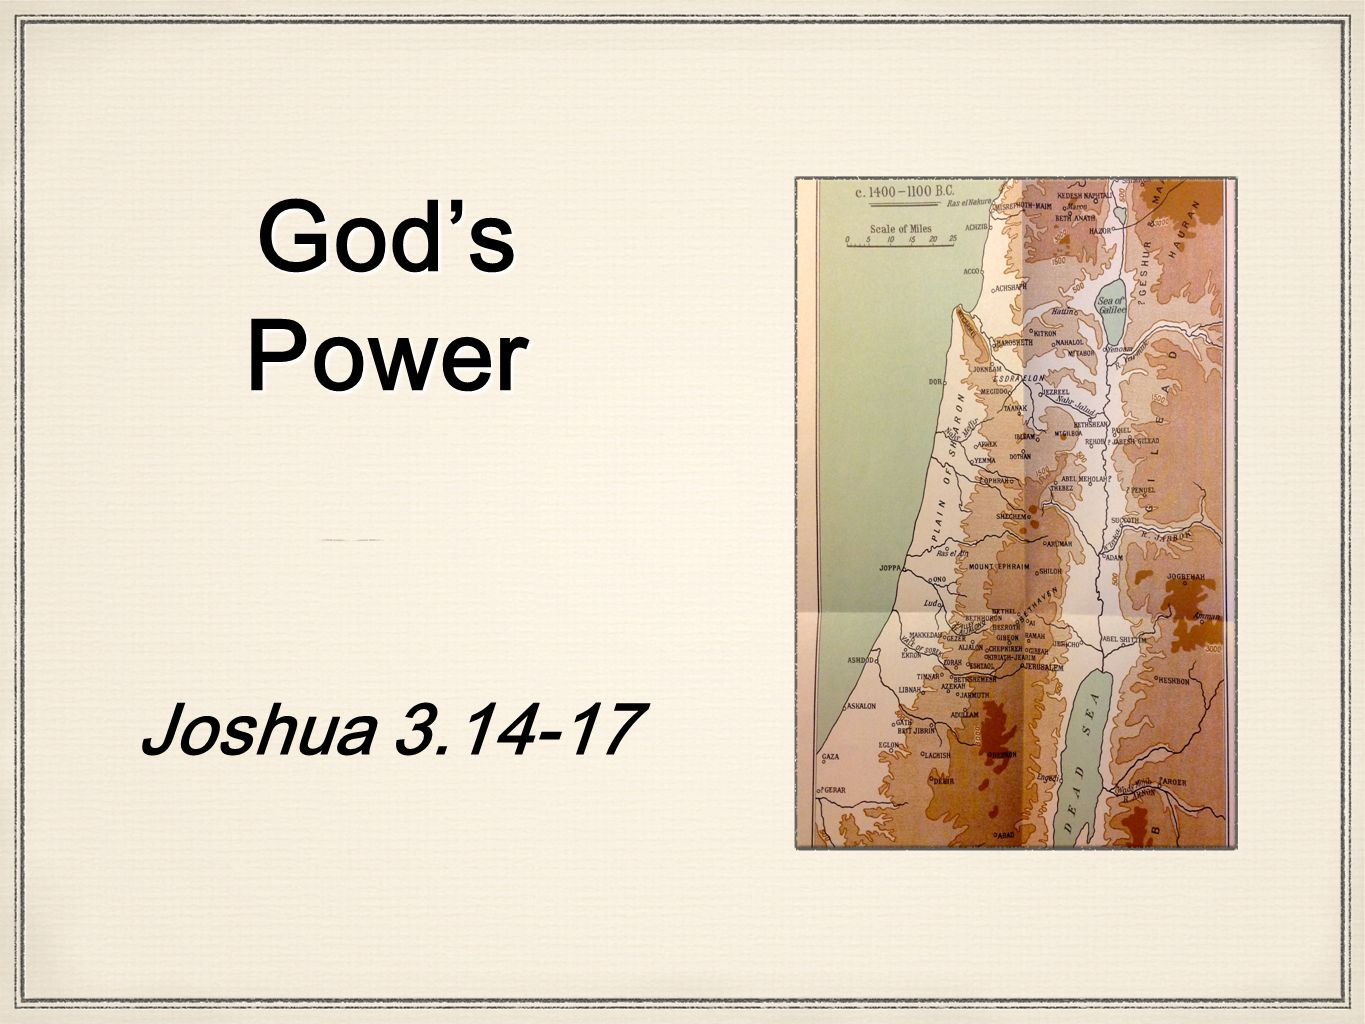 God's Power Joshua 3.14-17